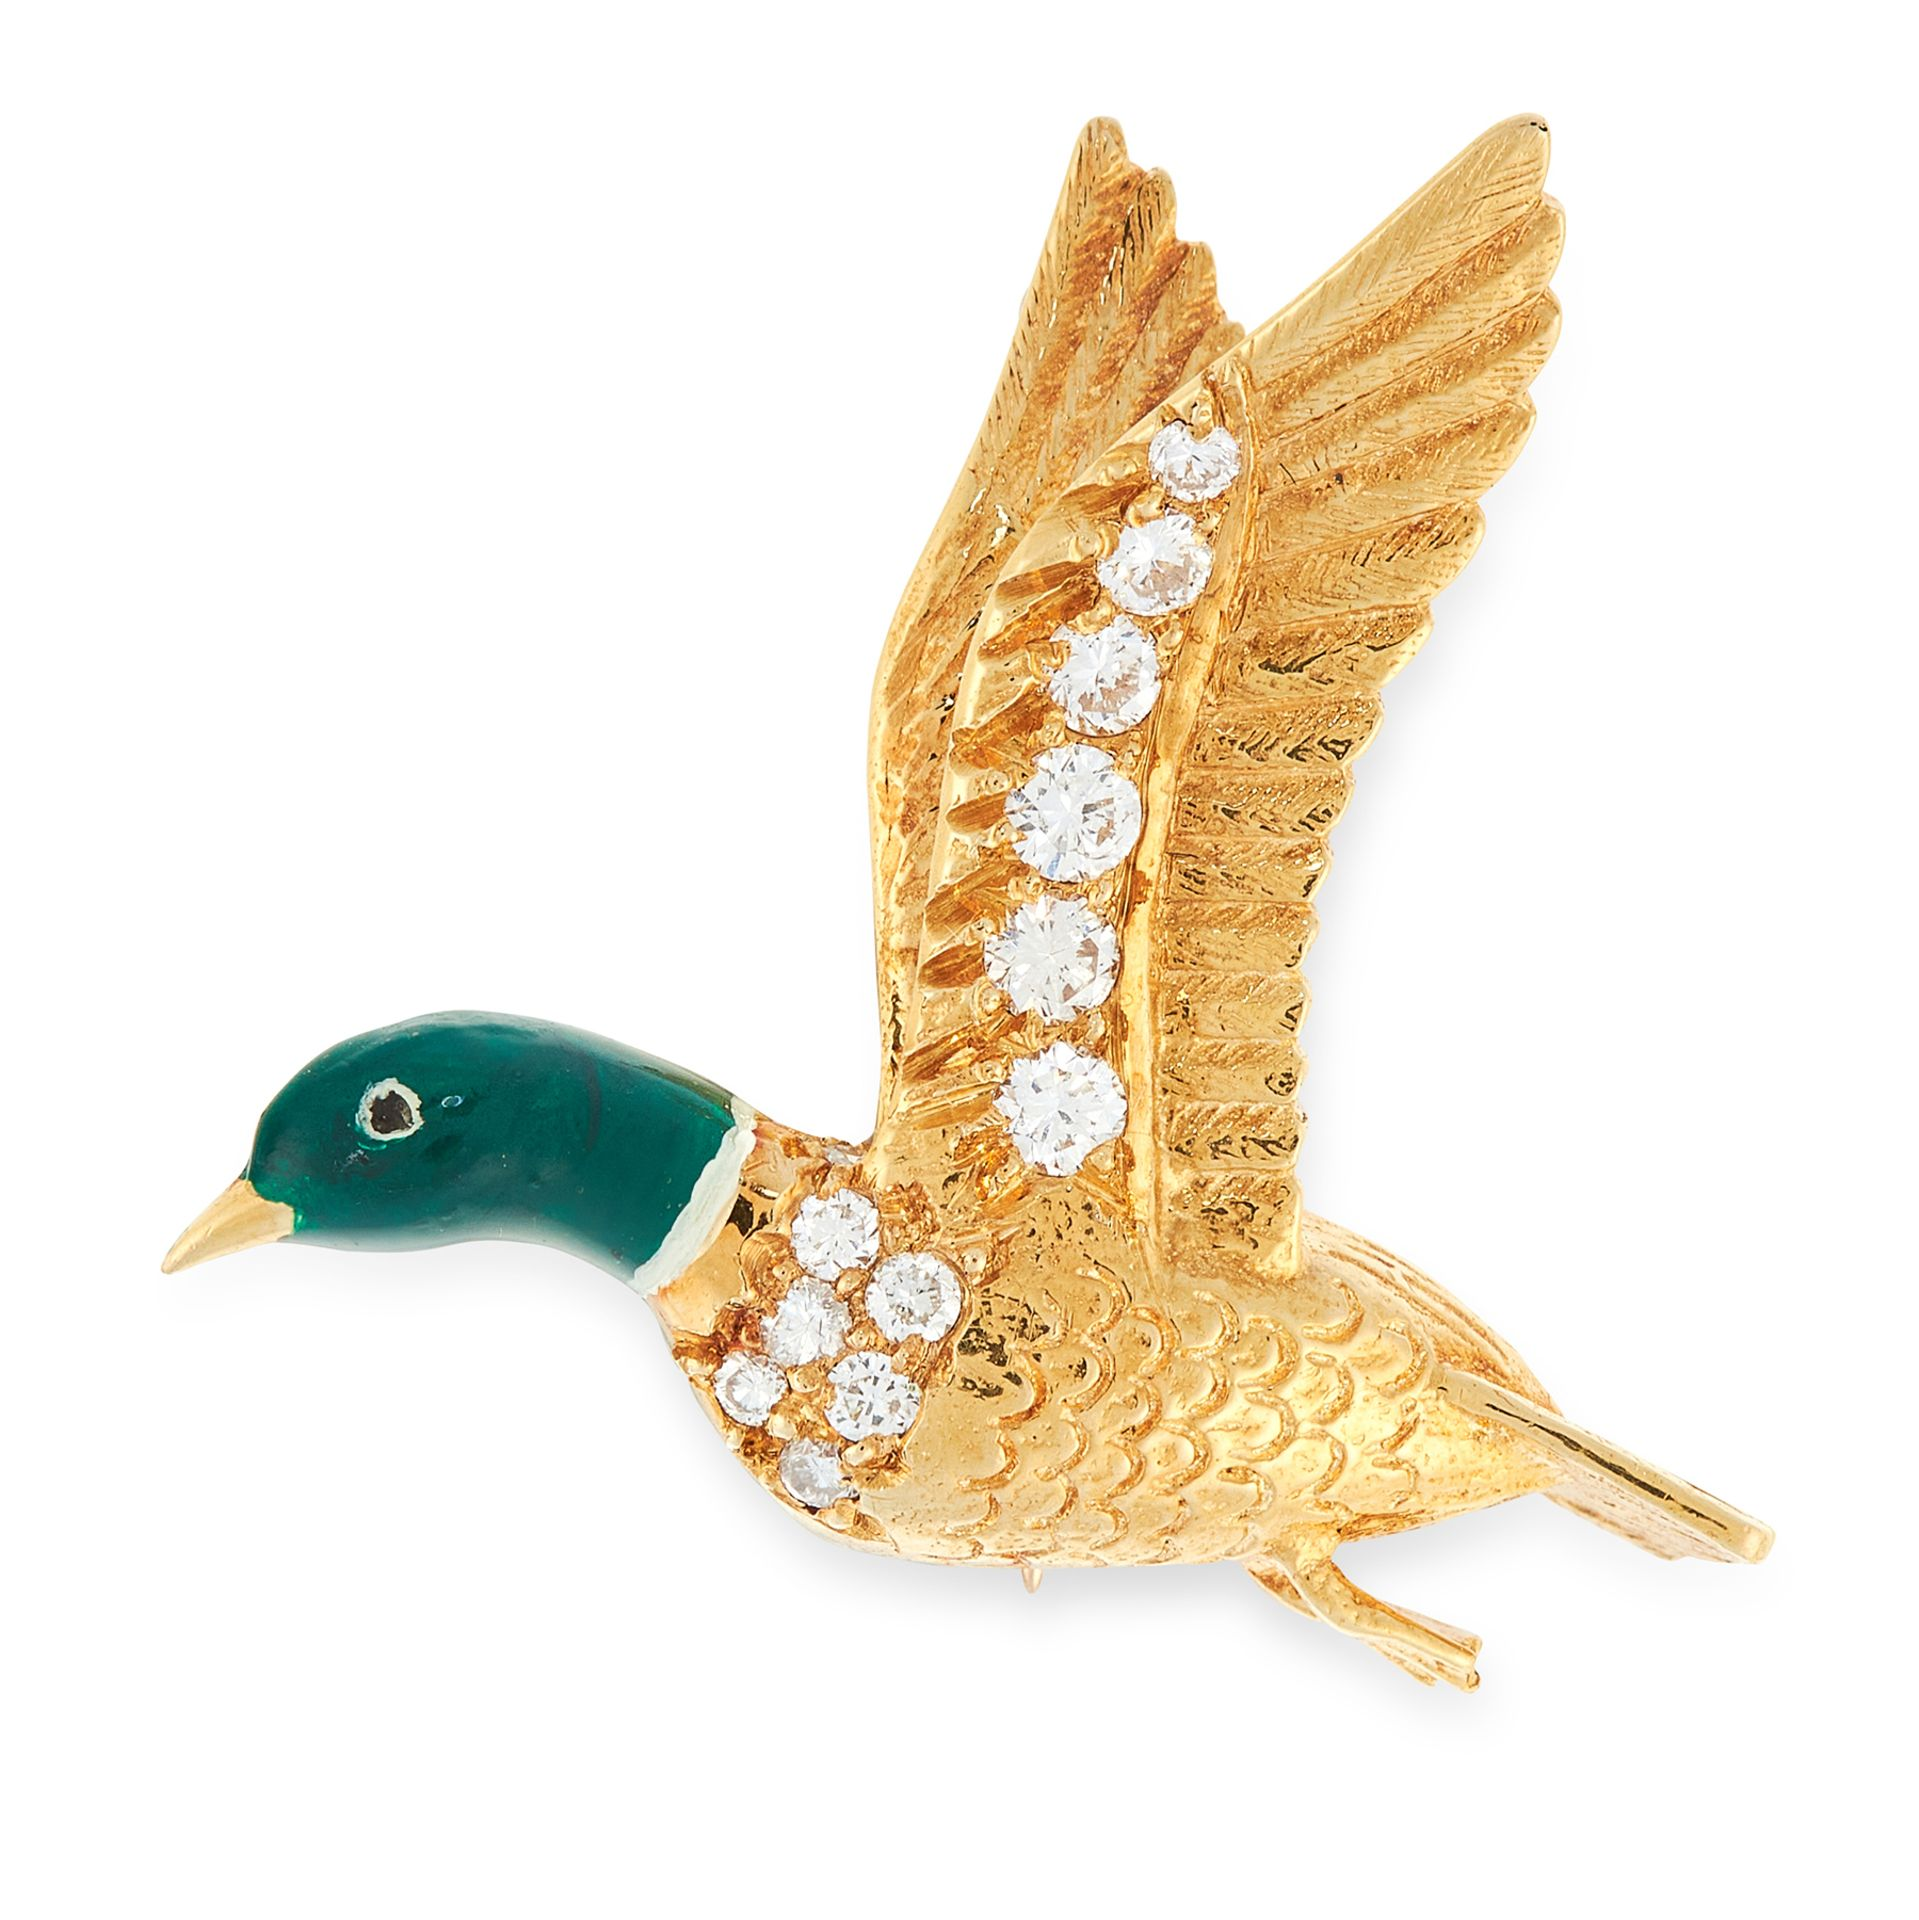 A VINTAGE DIAMOND AND ENAMEL DUCK BROOCH, E WOLFE & CO 1971 in 18ct yellow gold, designed as a